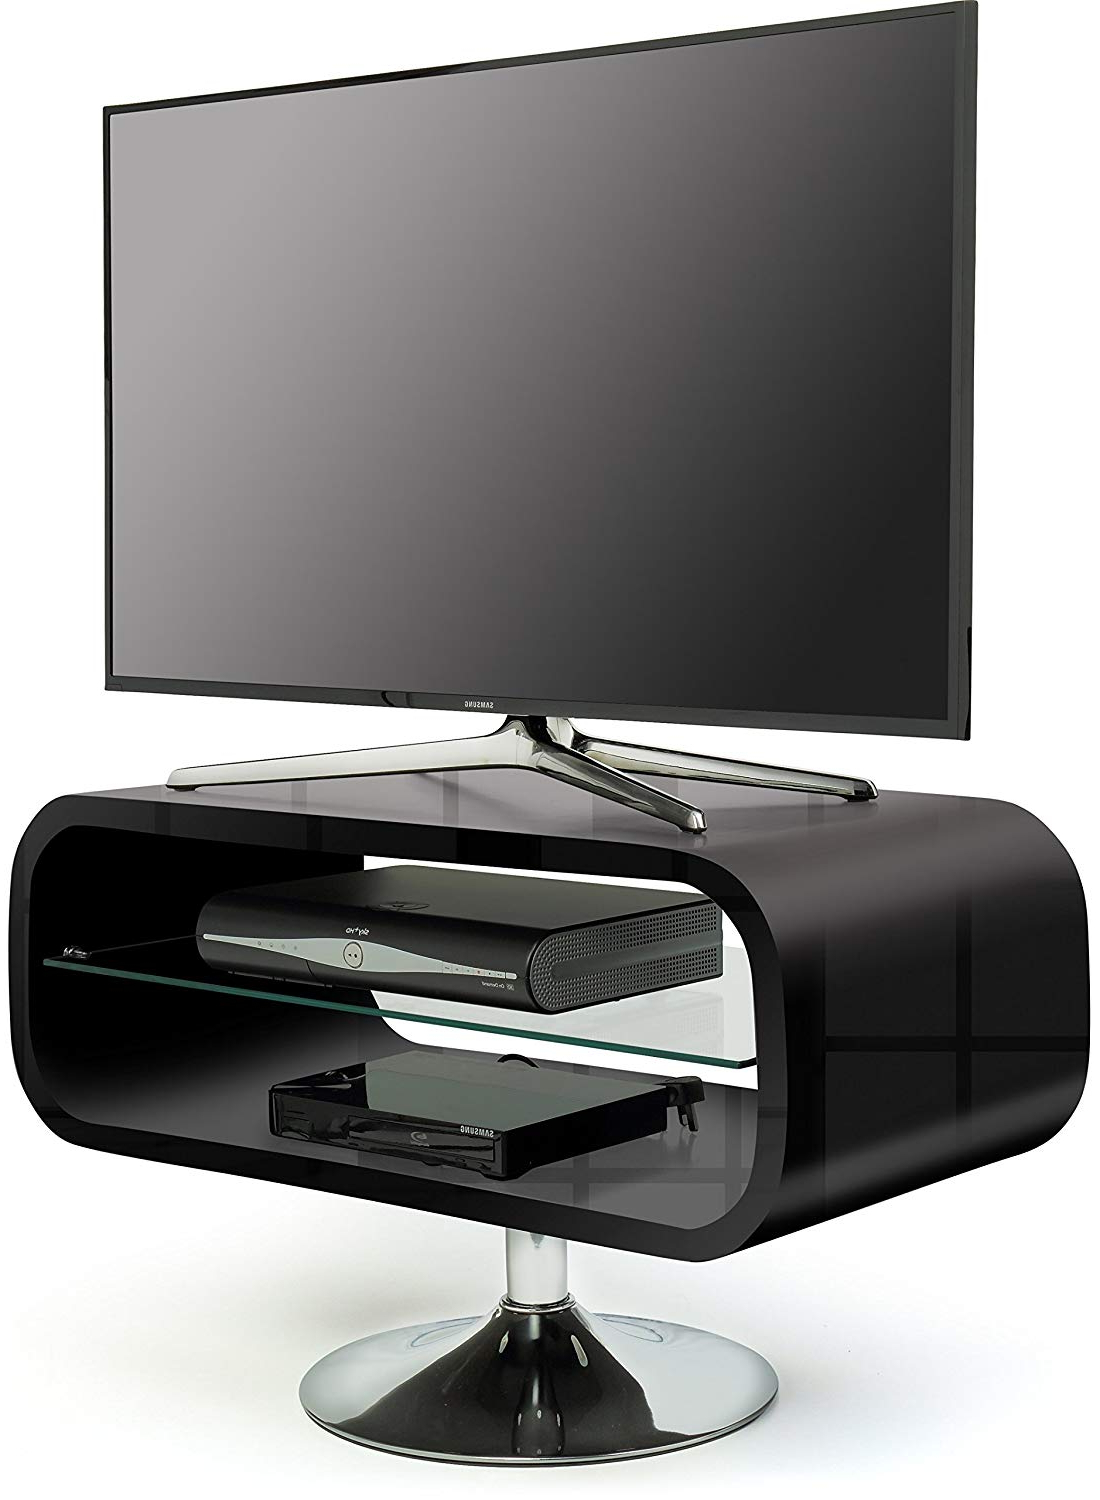 """Shiny Black Tv Stands In Recent Centurion Opod 19"""" 40"""" Lcd/led/ Oled: Amazon.co.uk: Electronics (Gallery 19 of 20)"""